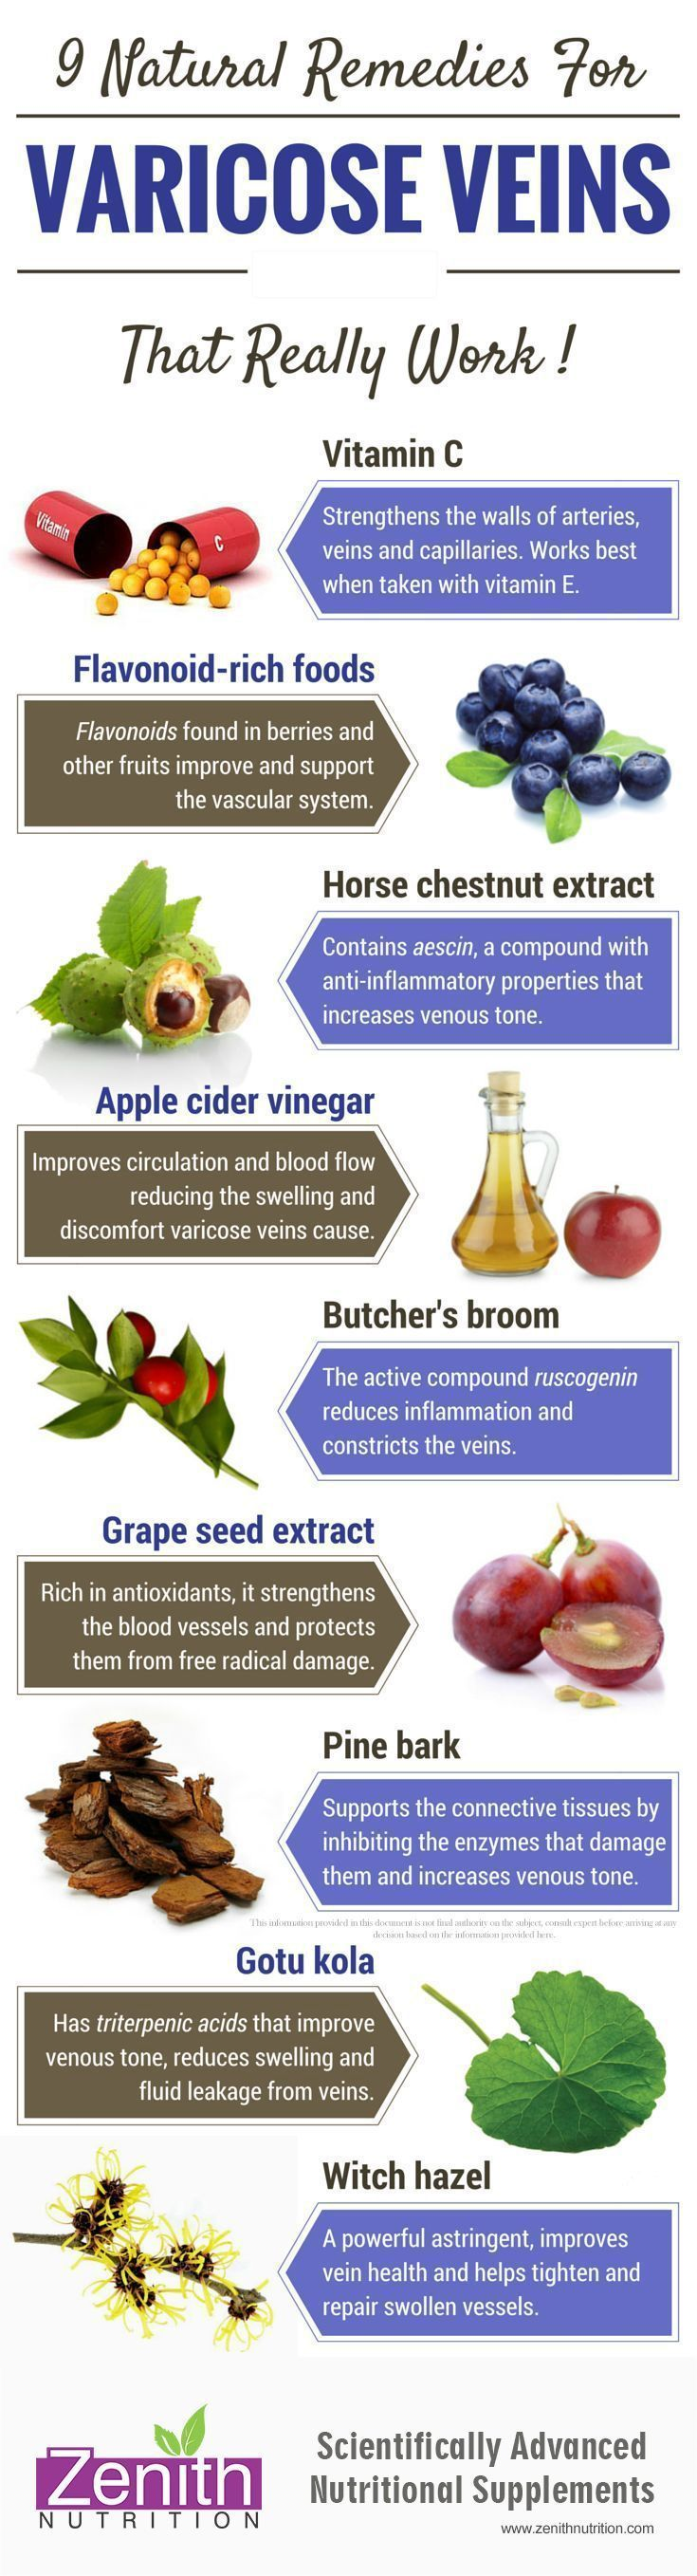 9 Natural Remedies for Varicose Veins. Vitamin C, Flavonoid-rich foods, Horse chest nut extract, Apple cider vinegar, Butcher's broom, Grape seed extract, Pine bark, Gotu Kola, Witch Hazel. Best supplements from Zenith Nutrition. Health Supplements. Nutritional Supplements. Health Infographics